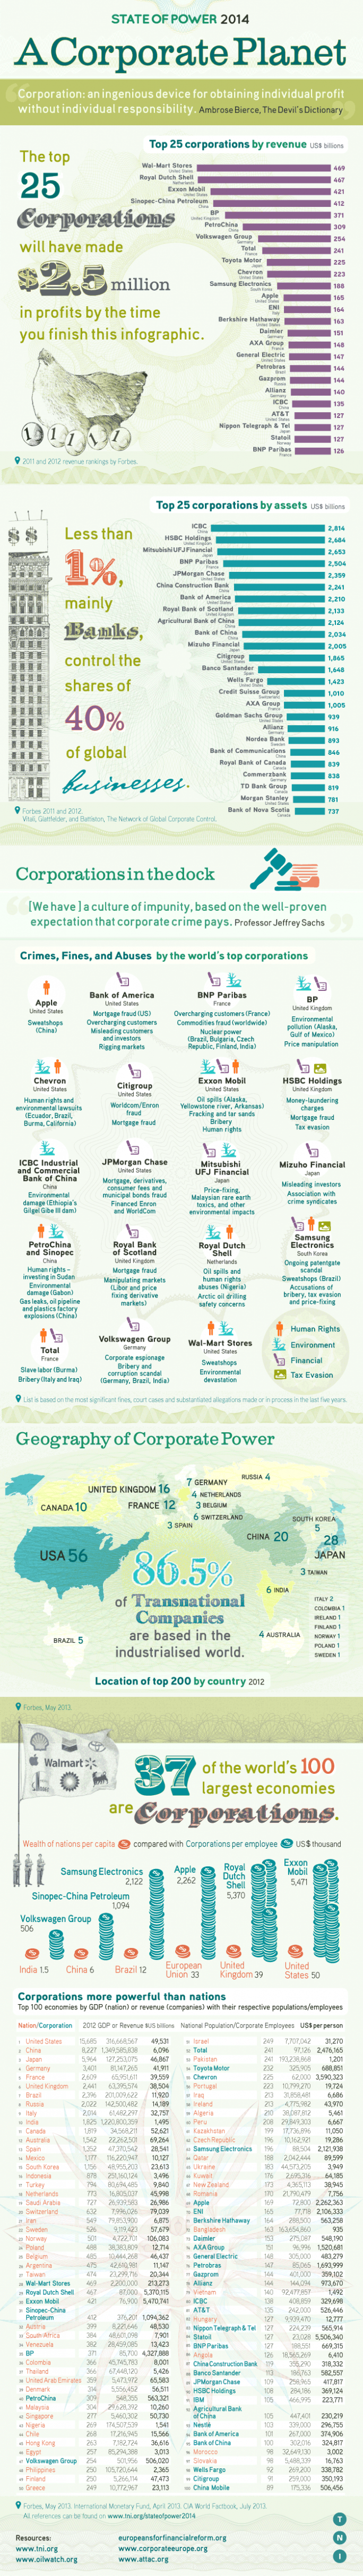 corporateworld2014